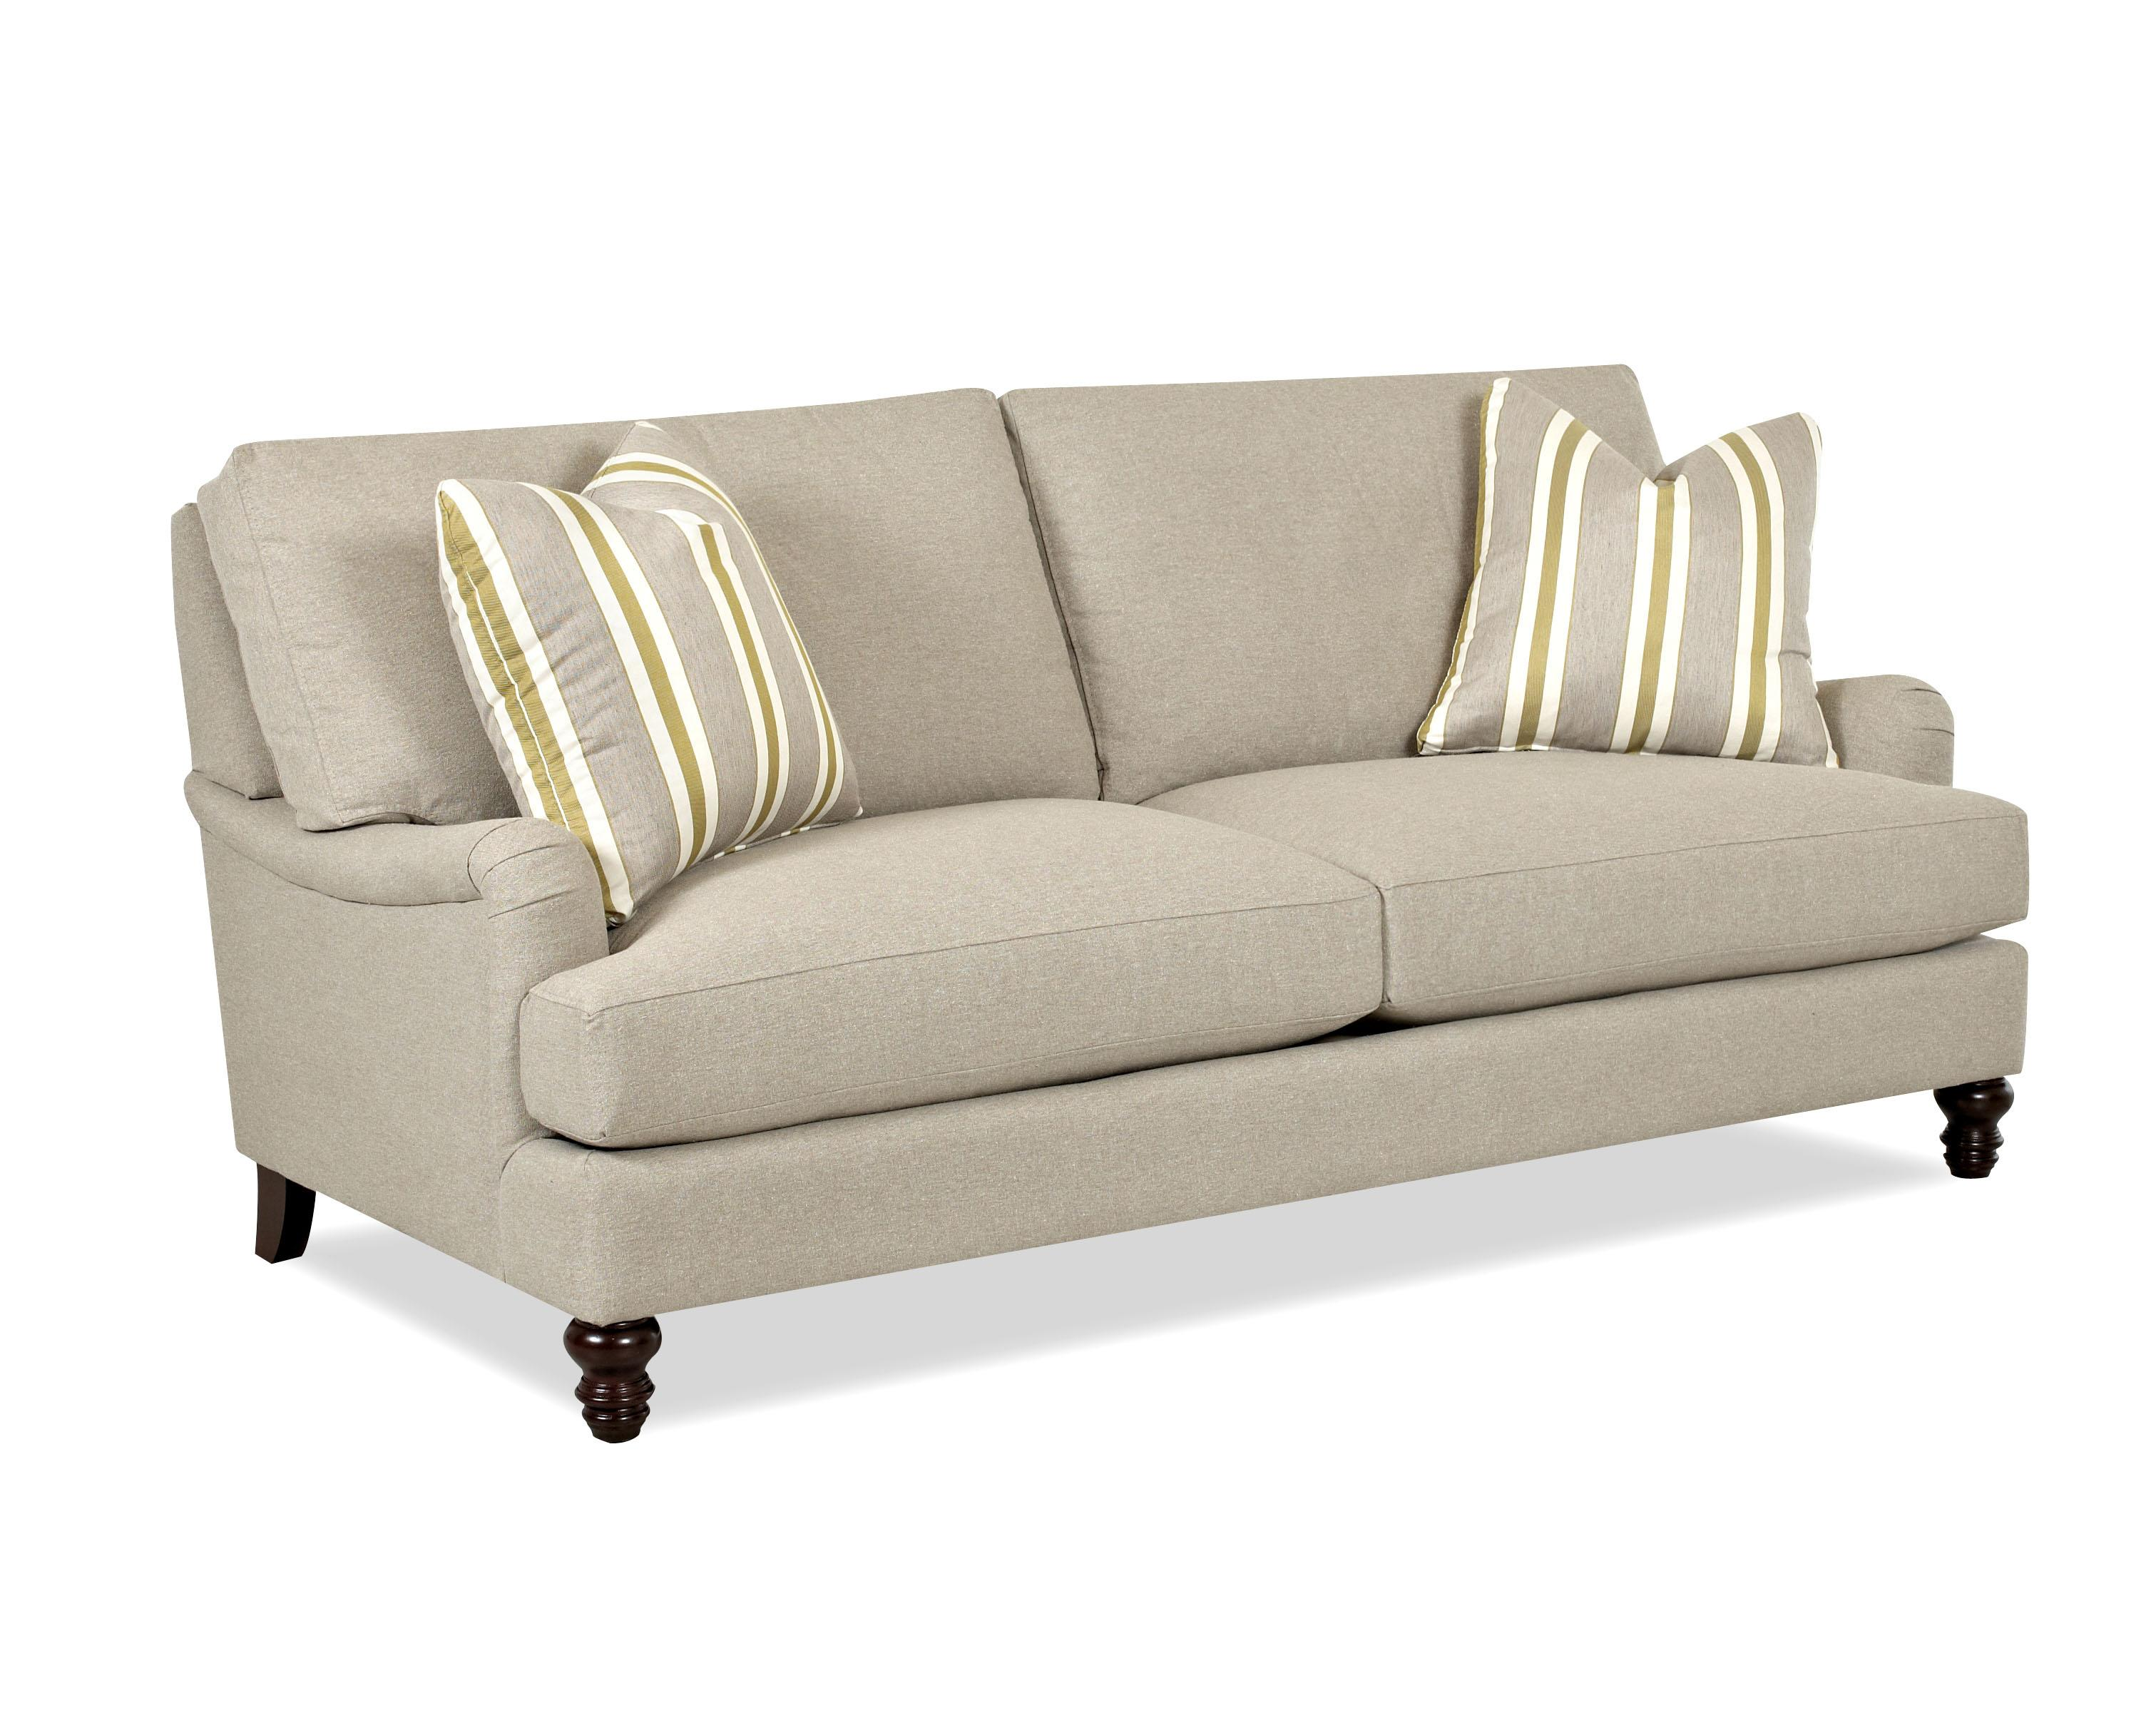 london sofa Traditional Stationary Sofa with T Cushions and Charles of London  london sofa